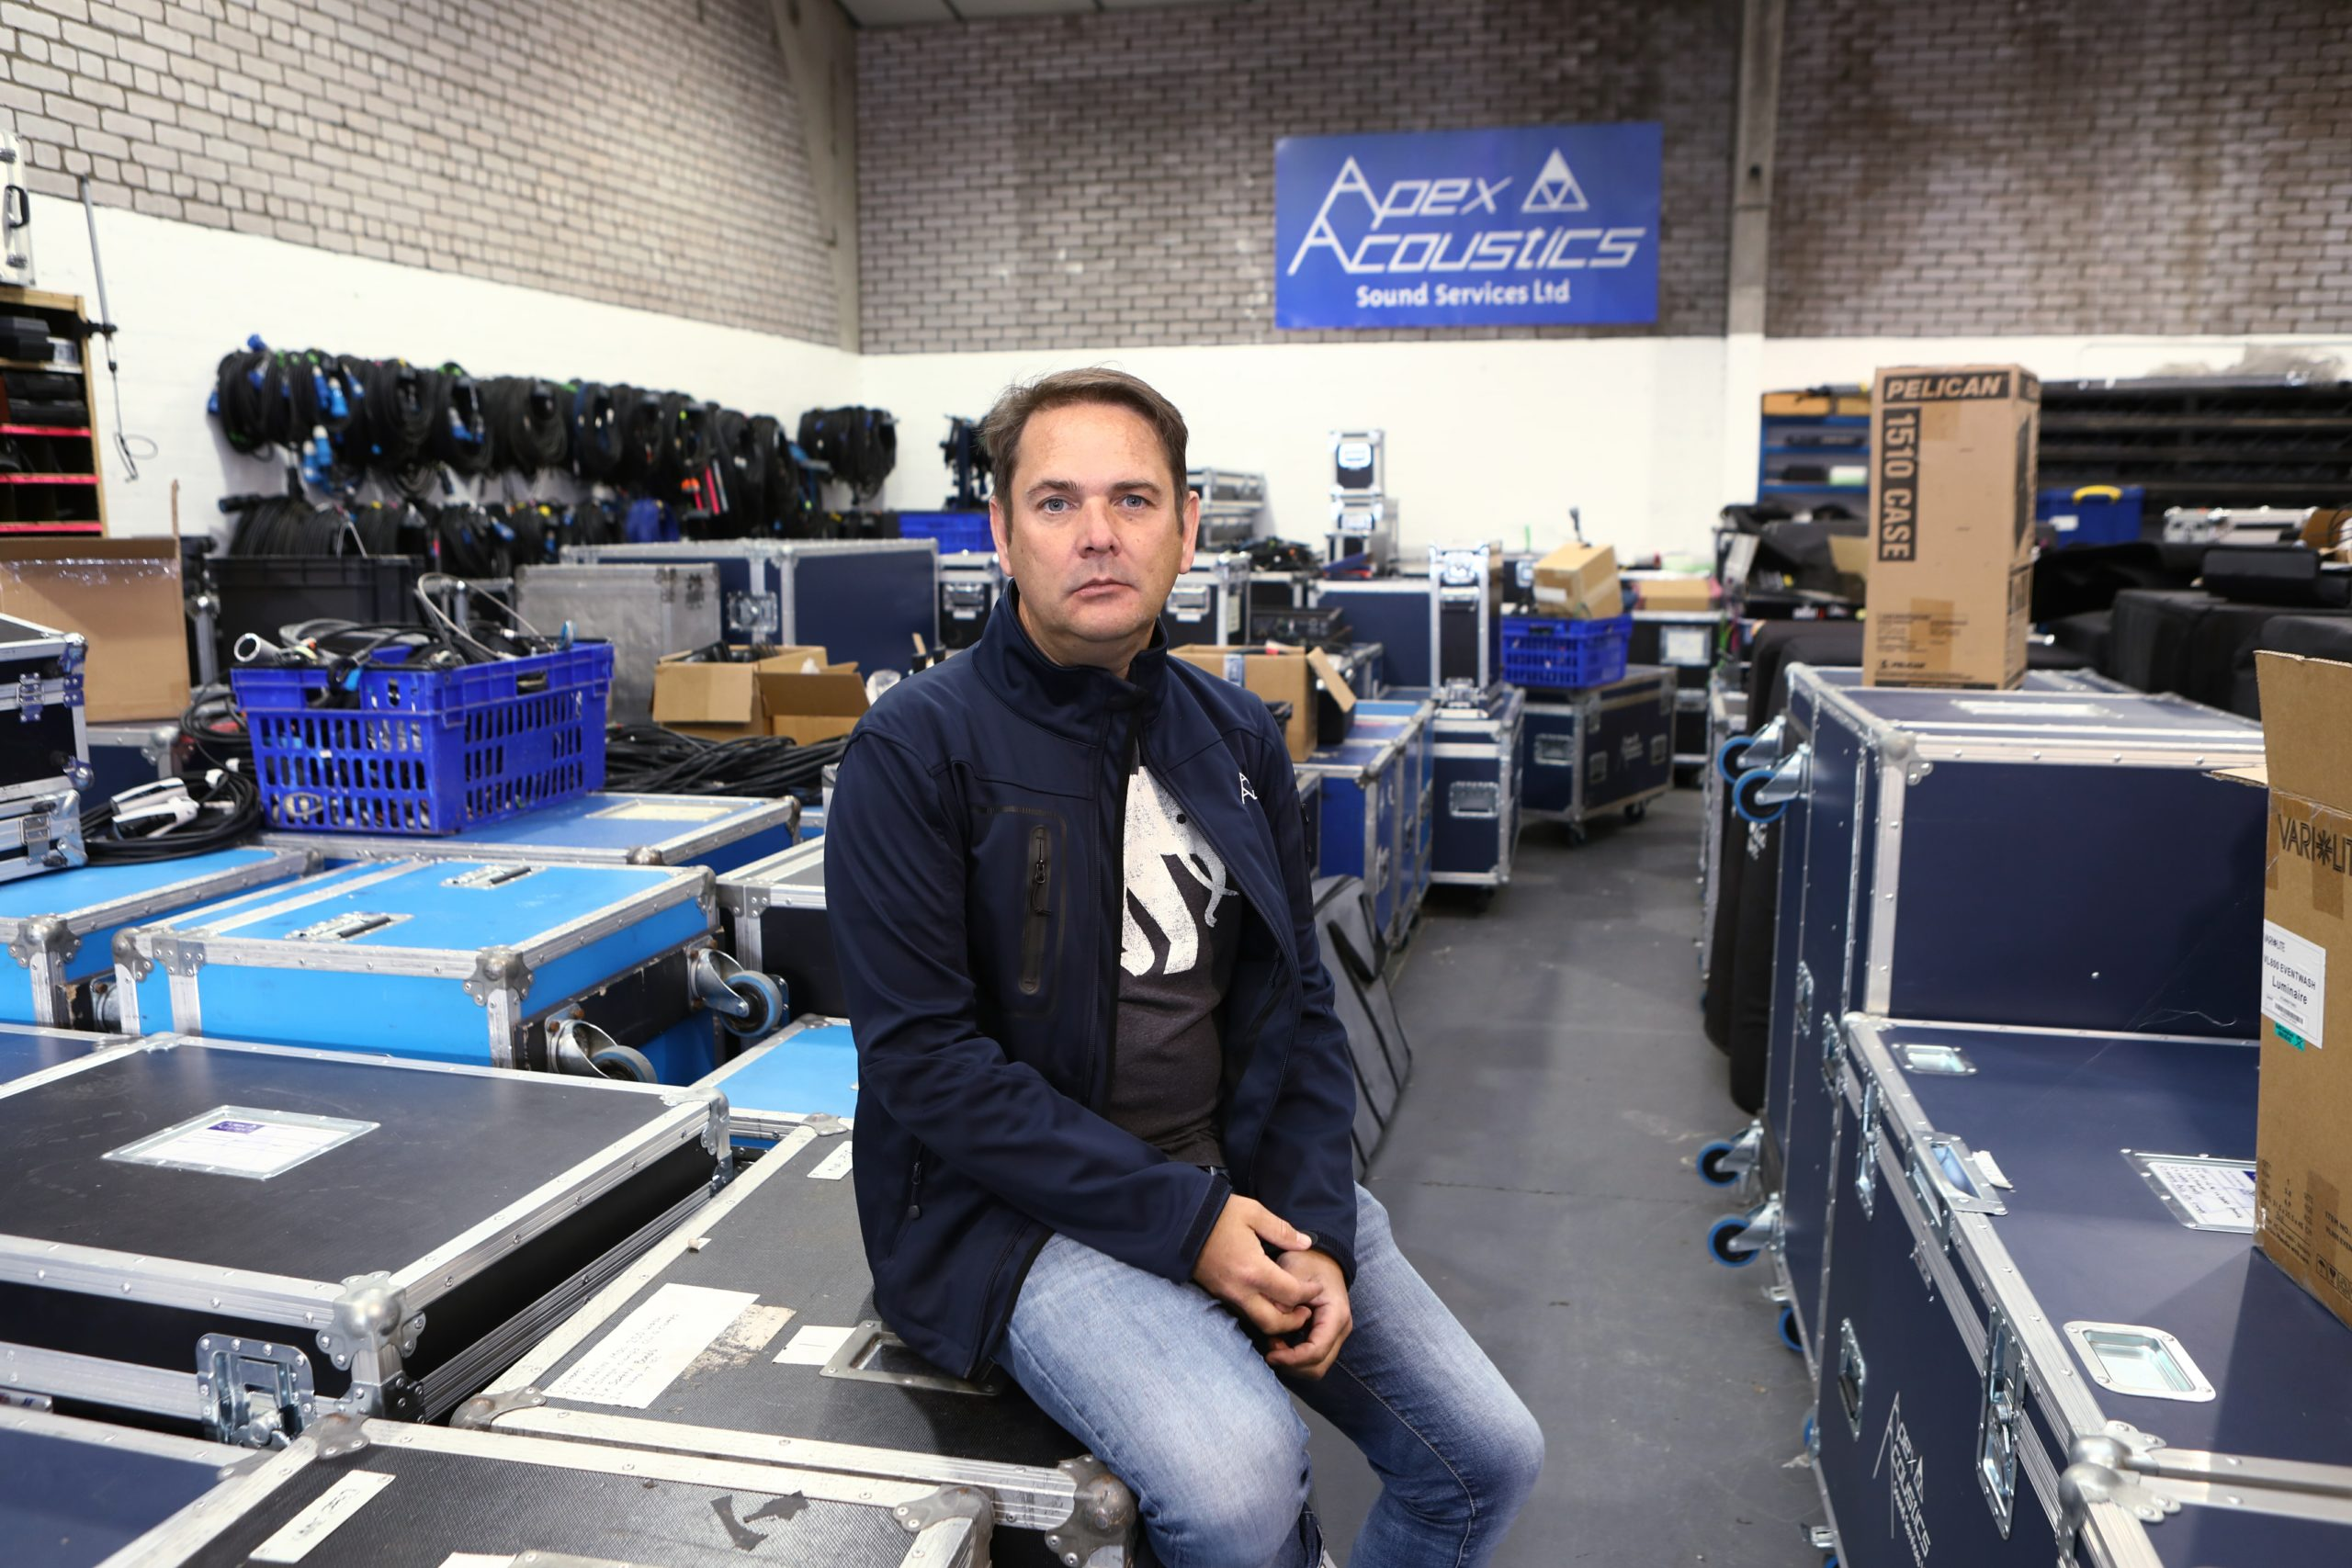 Paul Smith, director of Apex Acoustics.